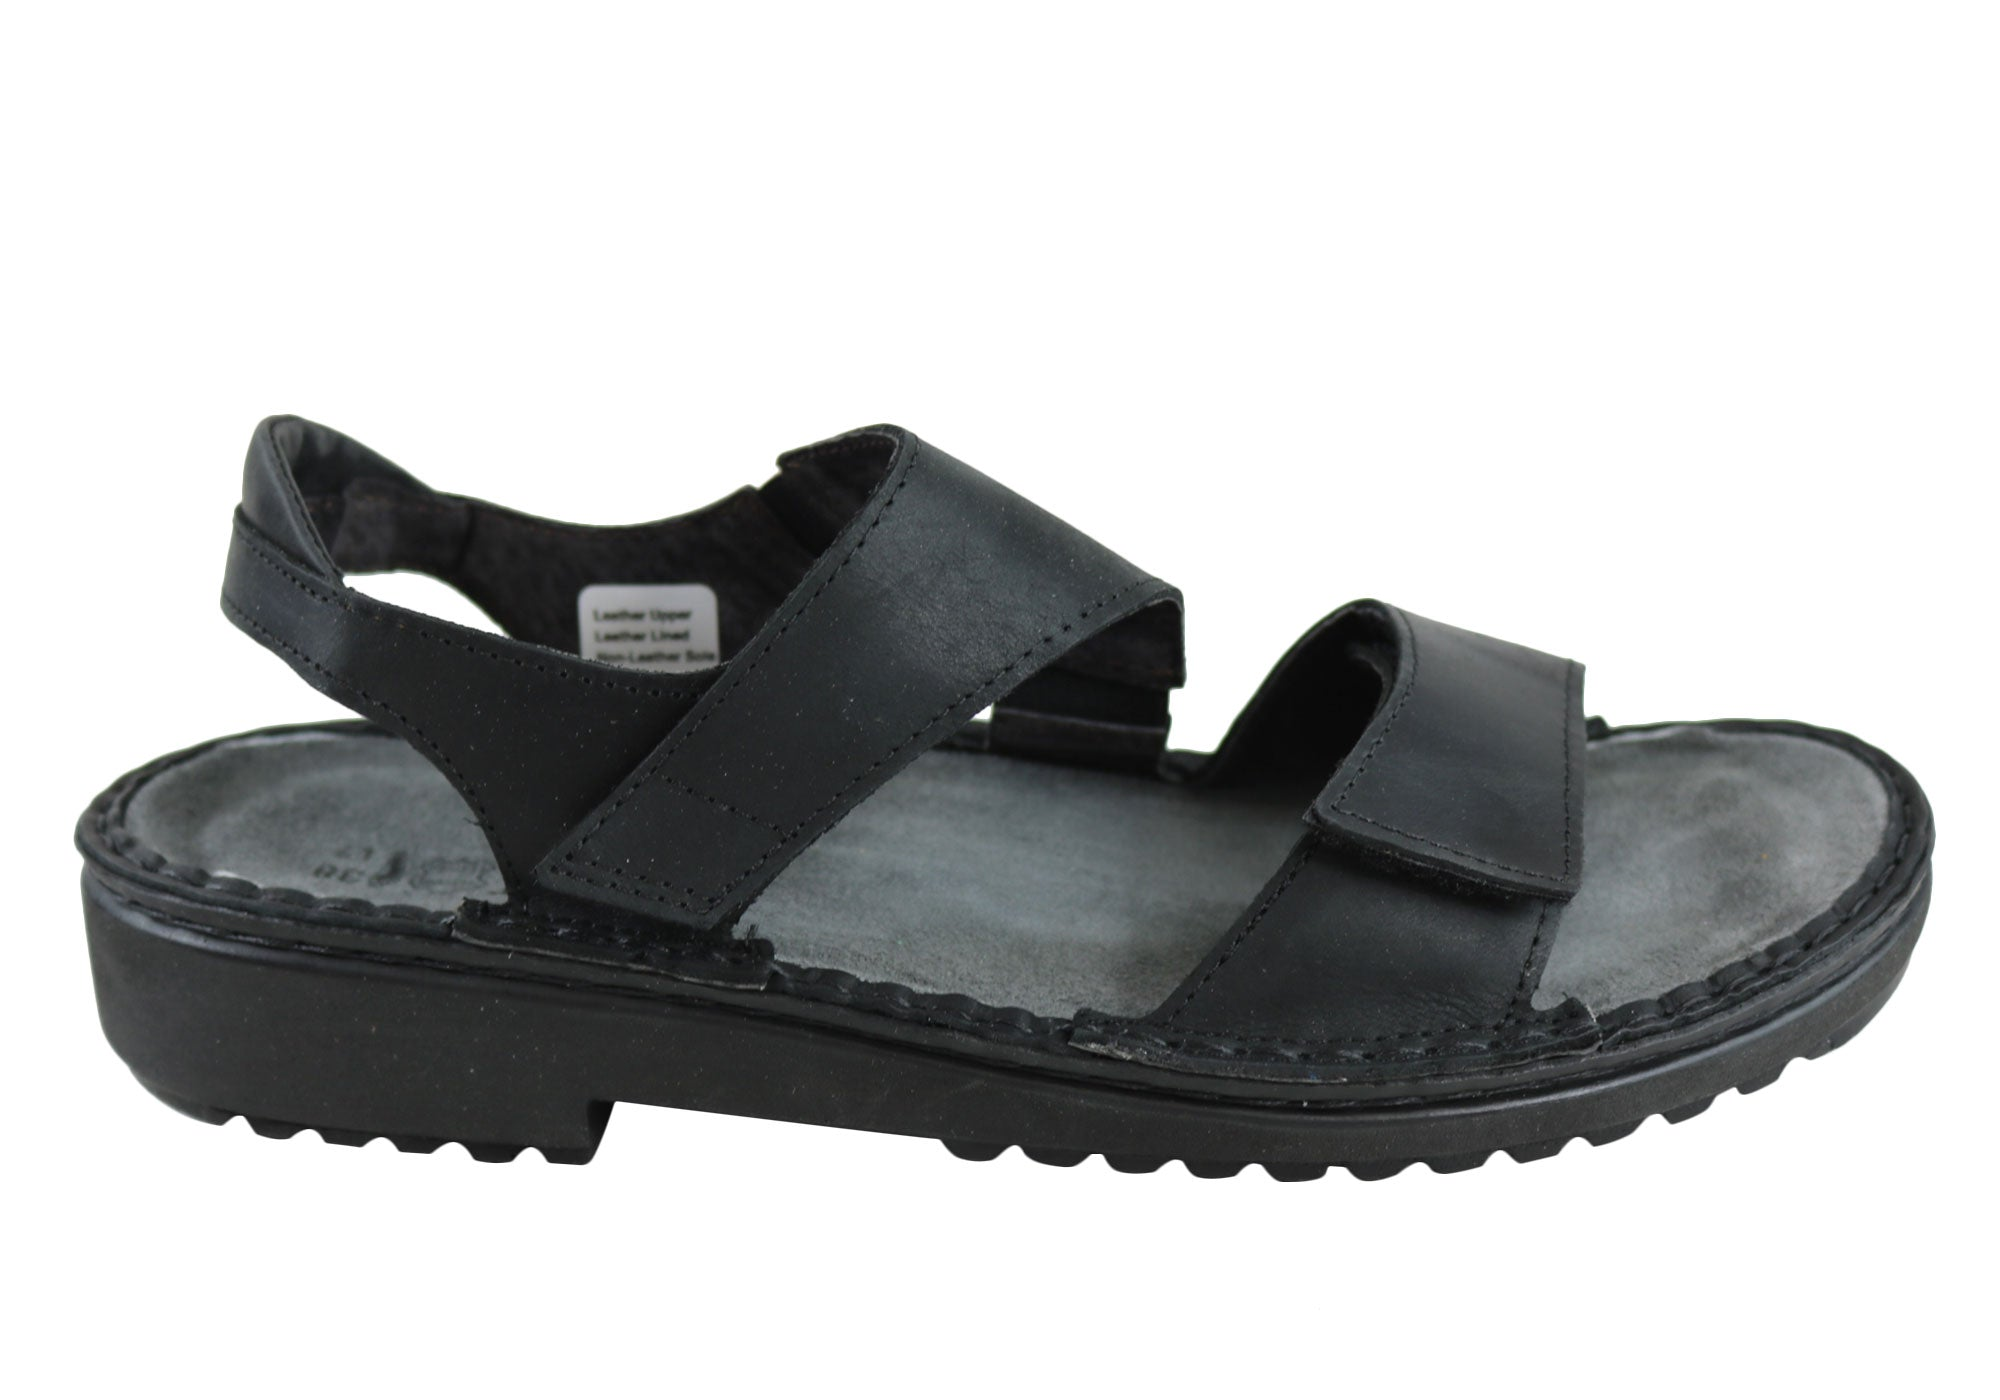 dc0bc01b6d36 Home Naot Enid Womens Comfort Orthotic Friendly Adjustable Strap Sandals.  Coal ...